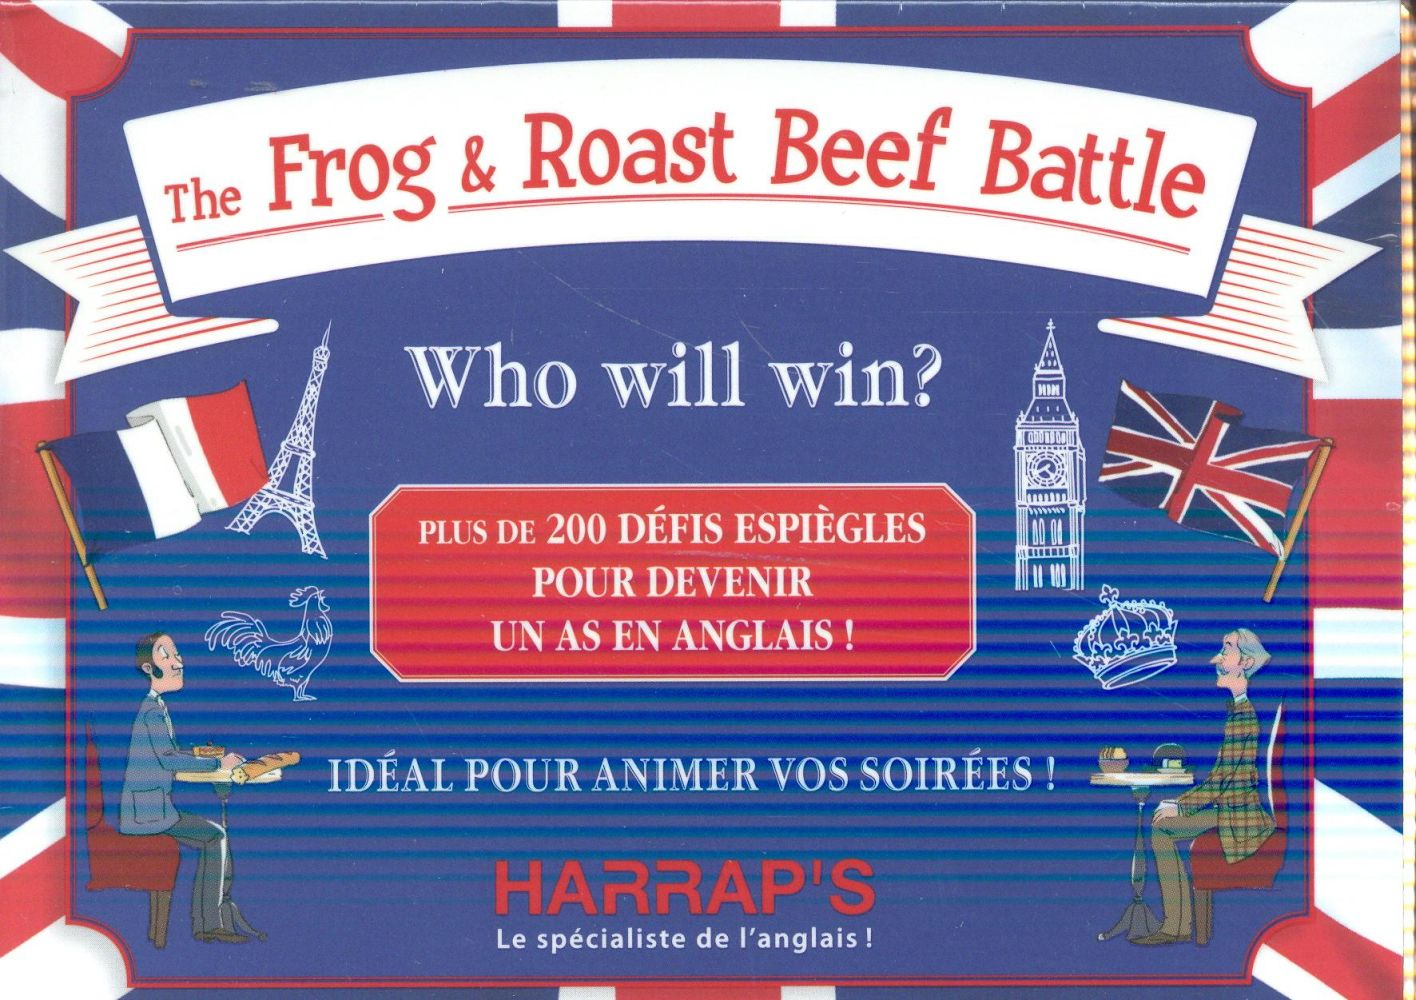 The frog and roast beef battle